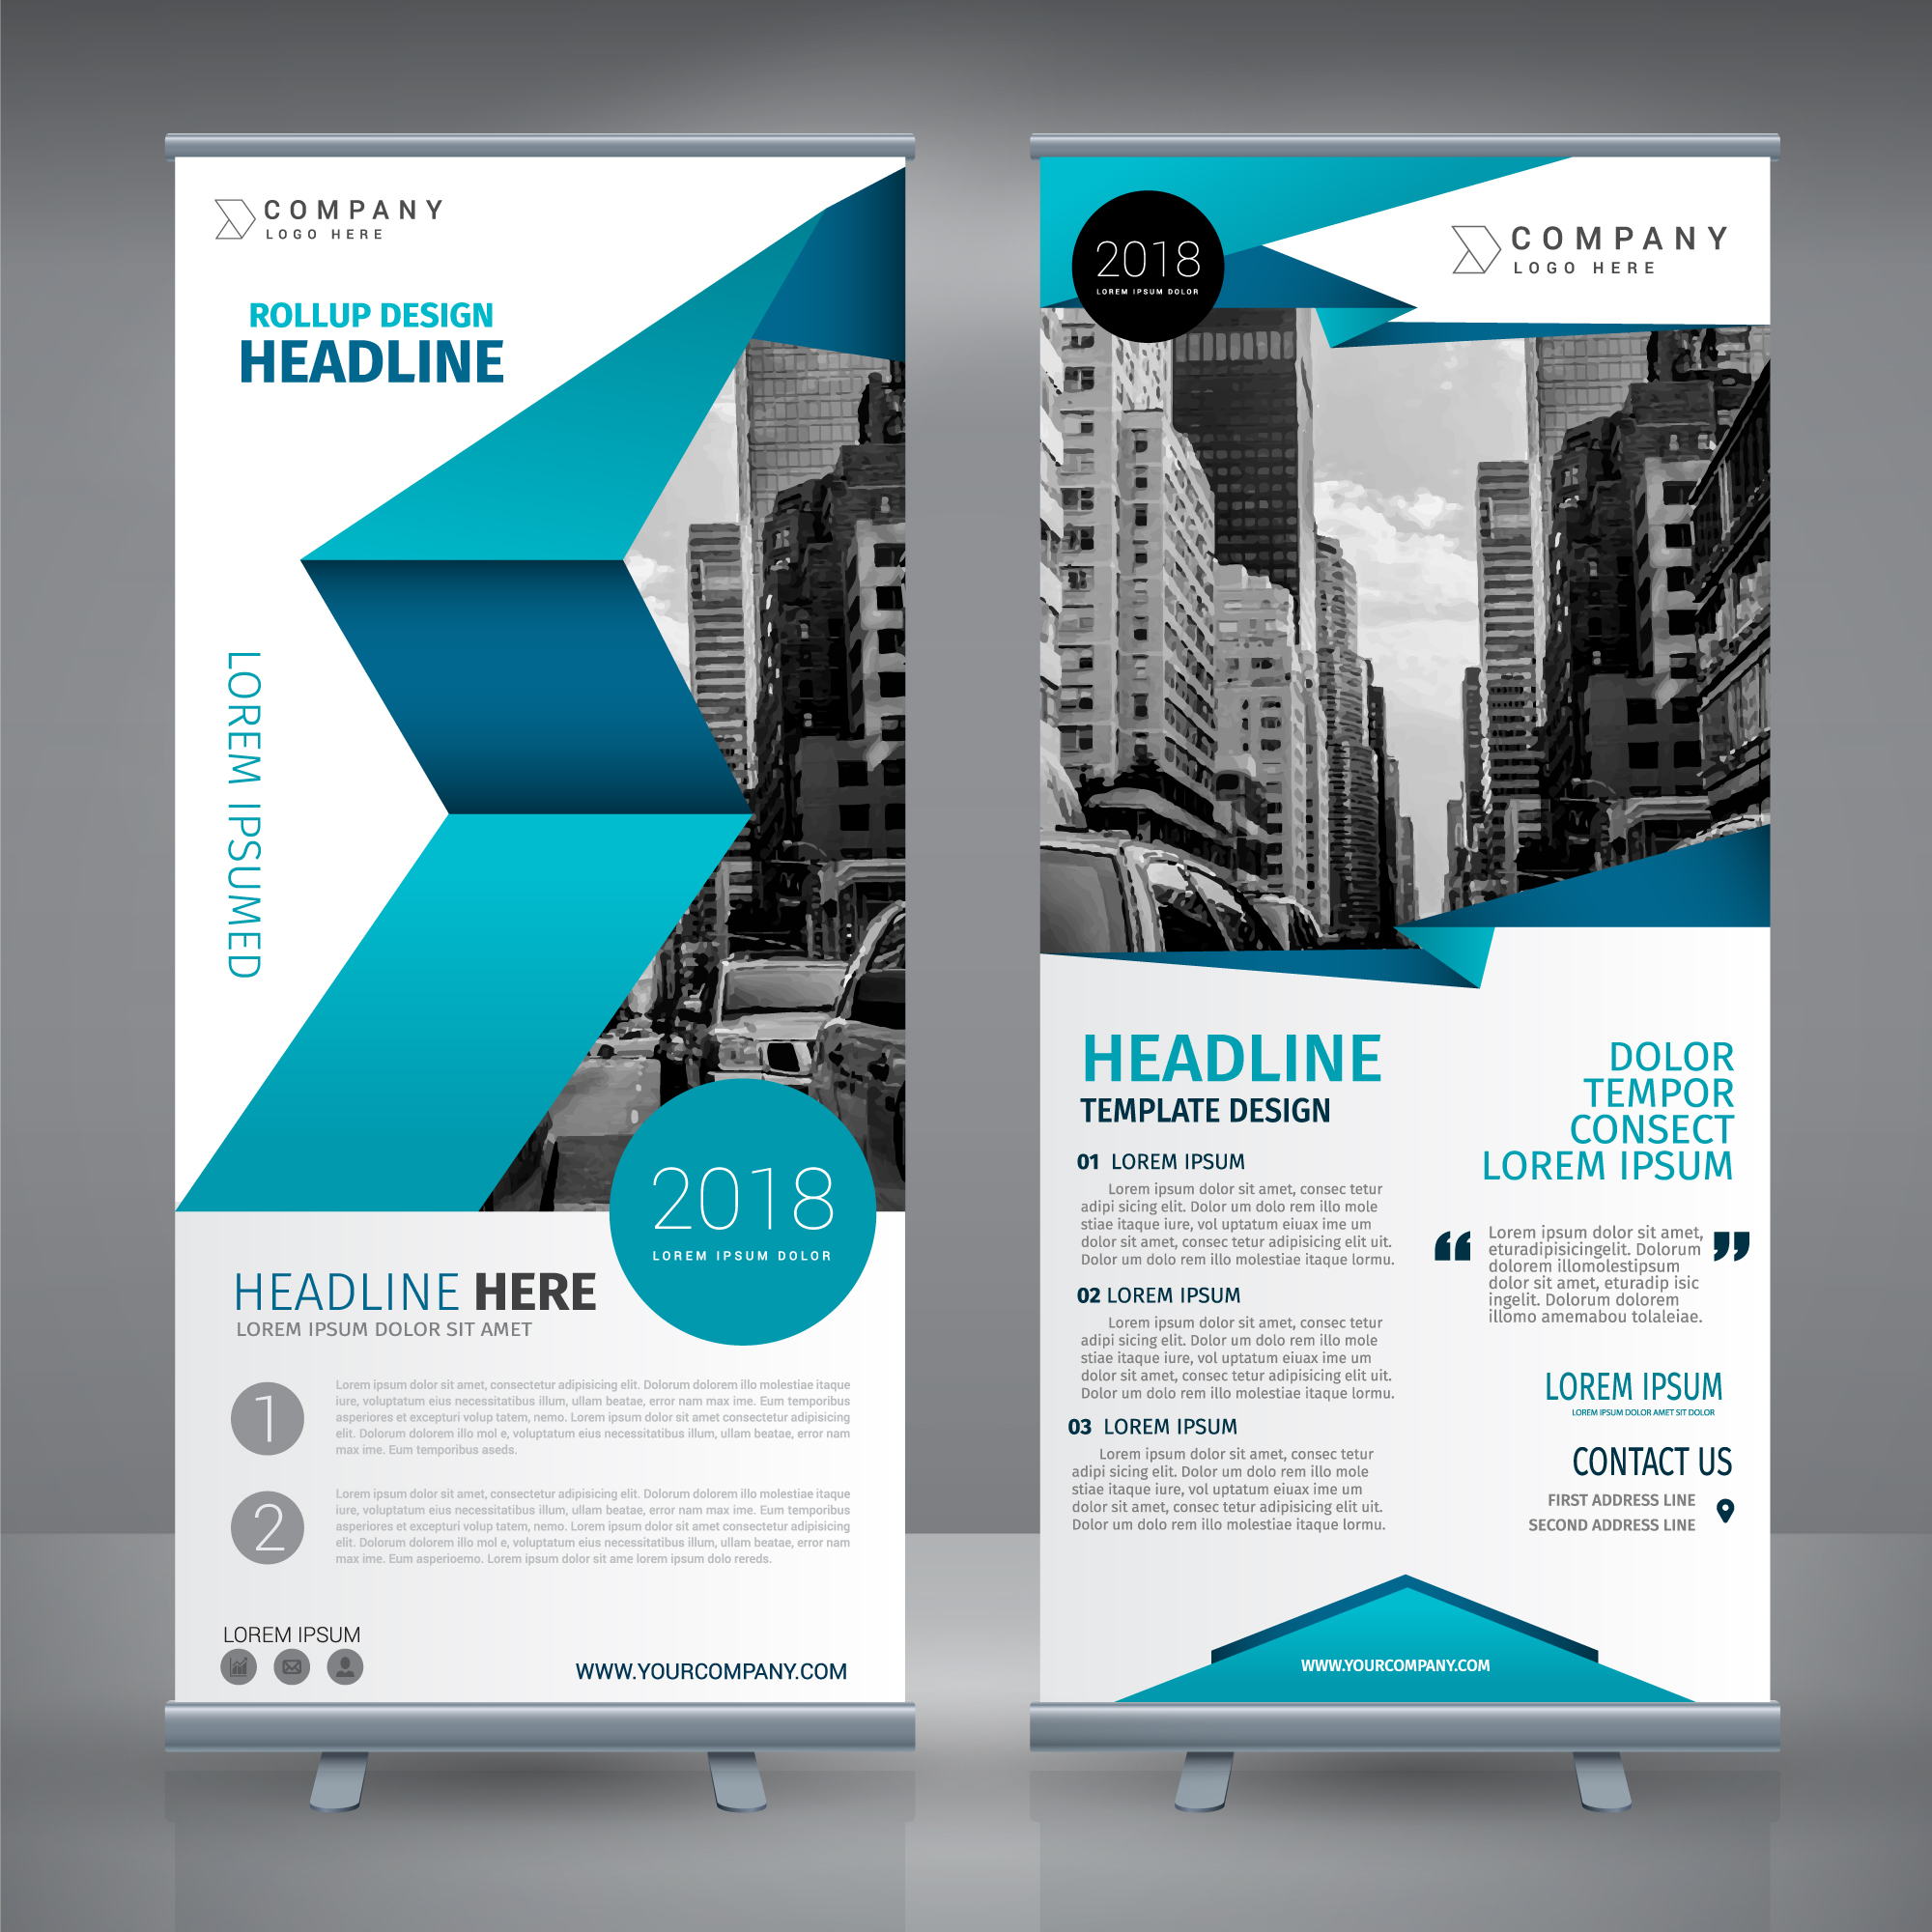 Roll up Template-Design